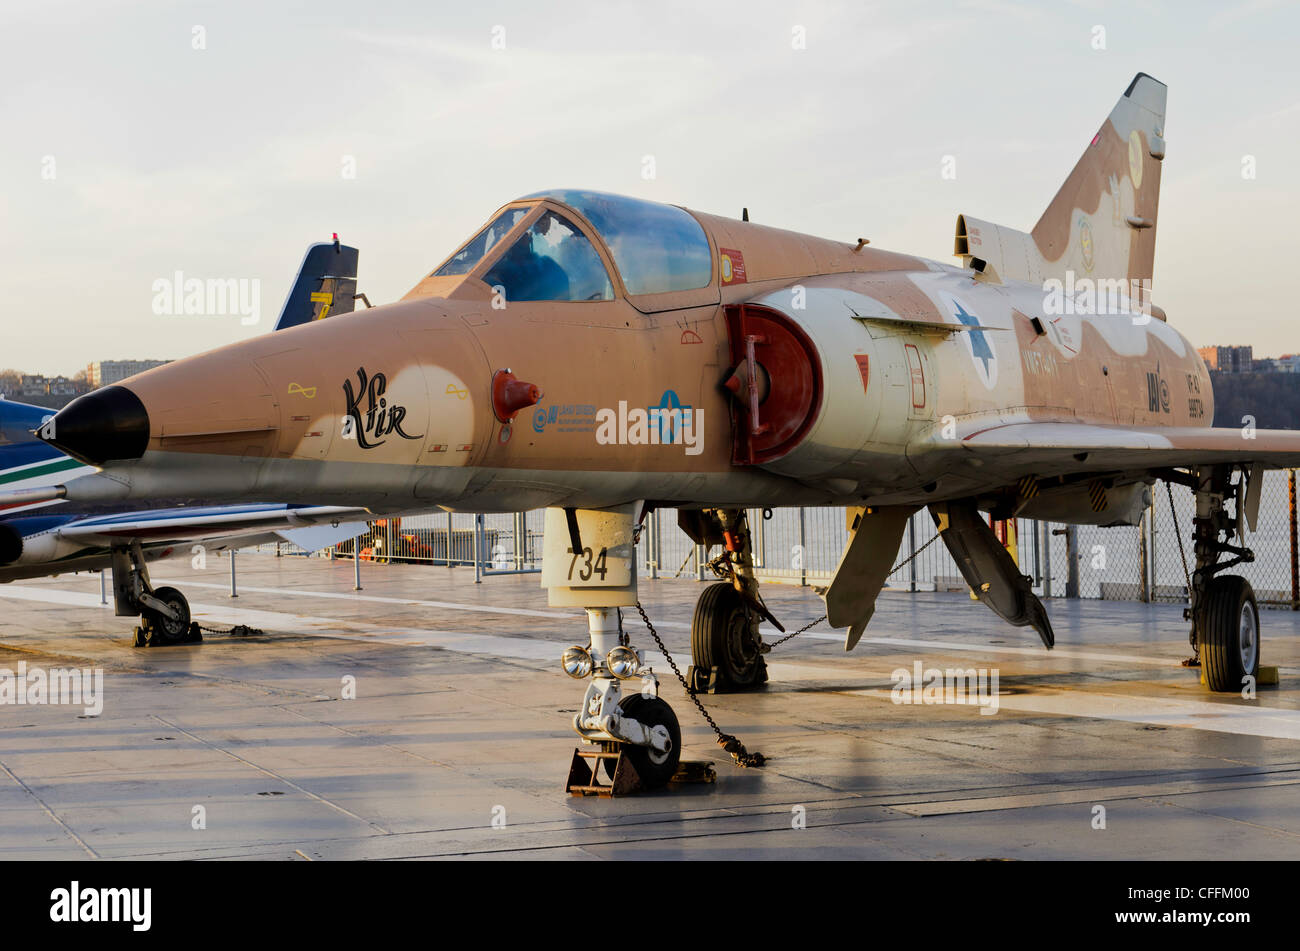 Israel Aircraft Industries Kfir - Stock Image